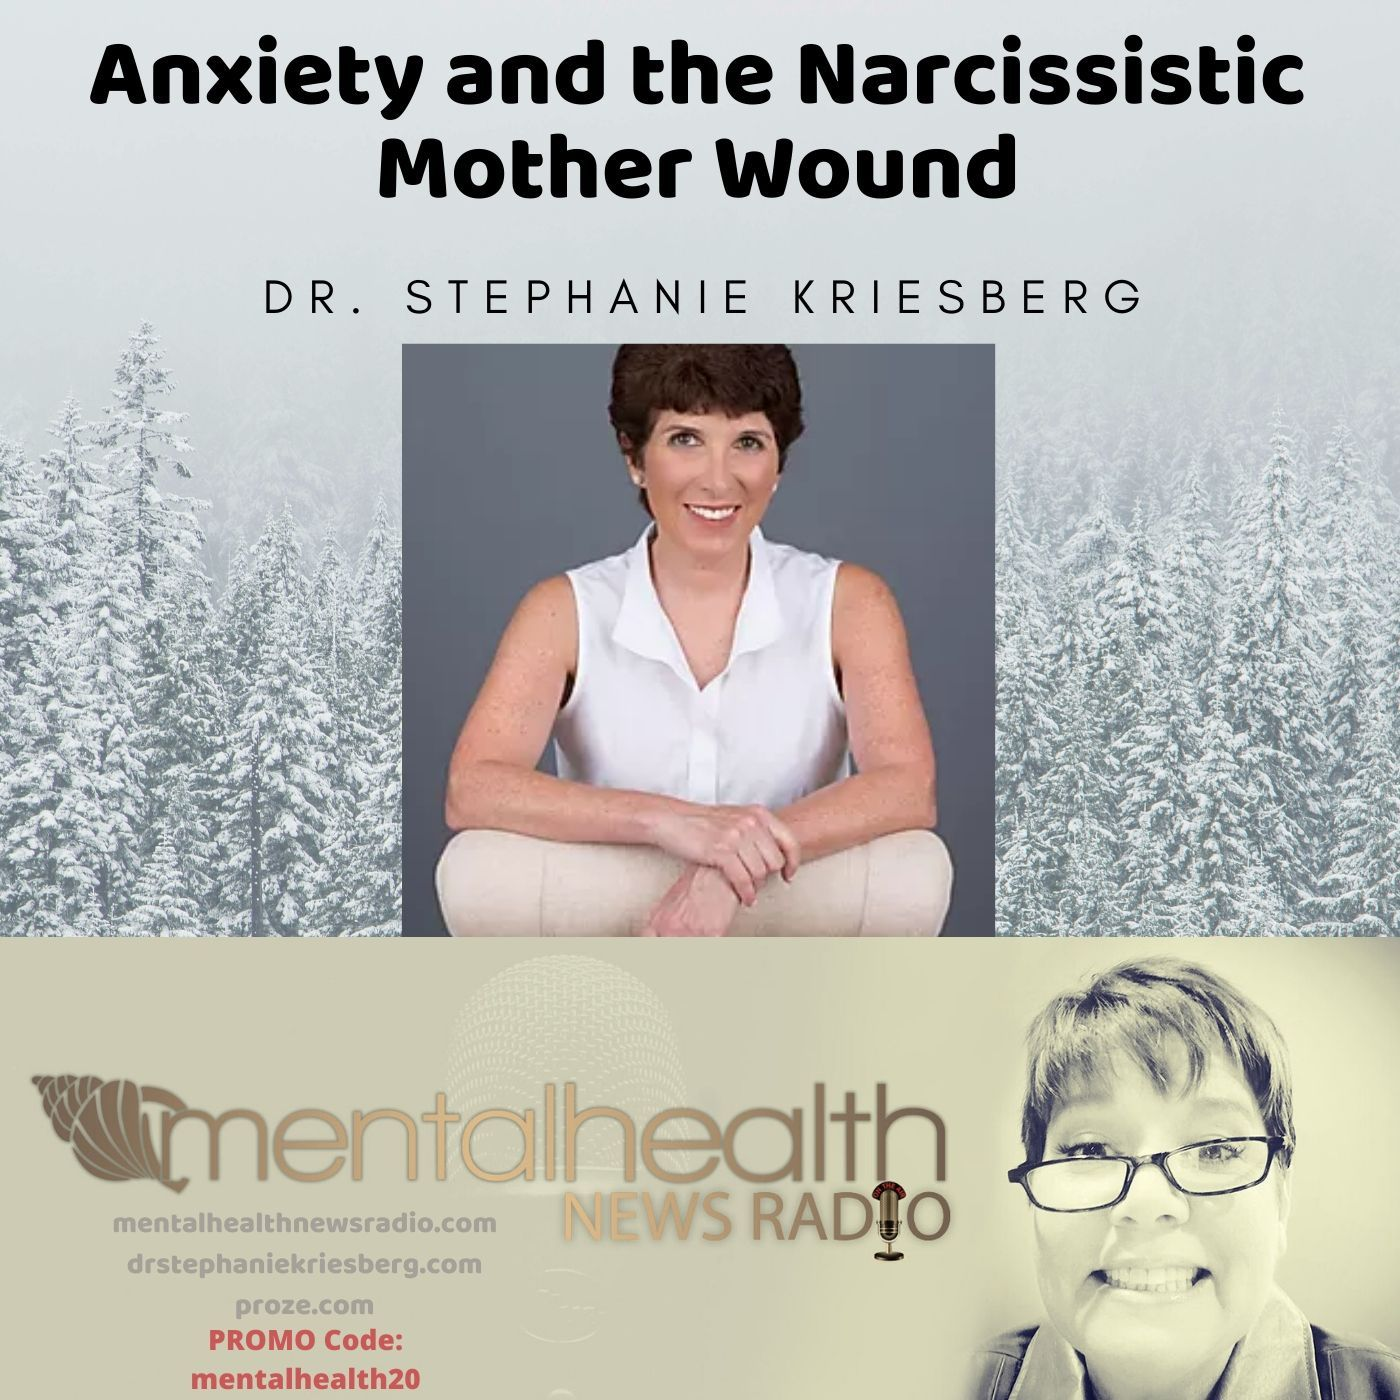 Mental Health News Radio - Anxiety and the Narcissistic Mother Wound